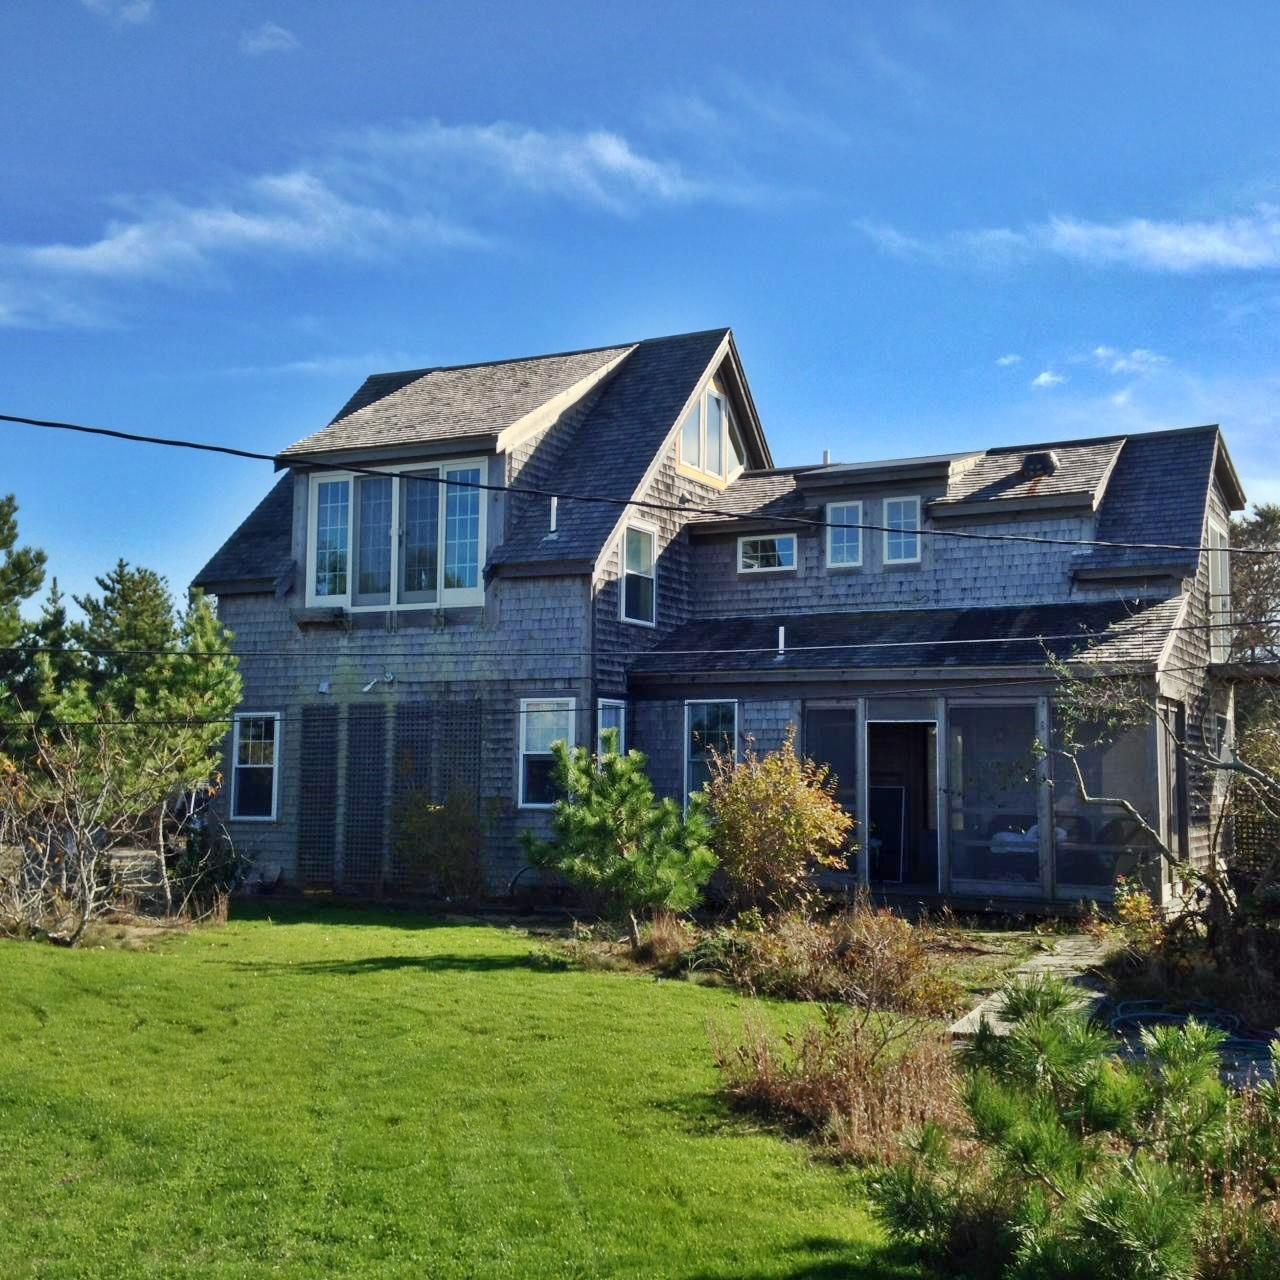 Truro Vacation Rental Home In Cape Cod MA 02652, On The